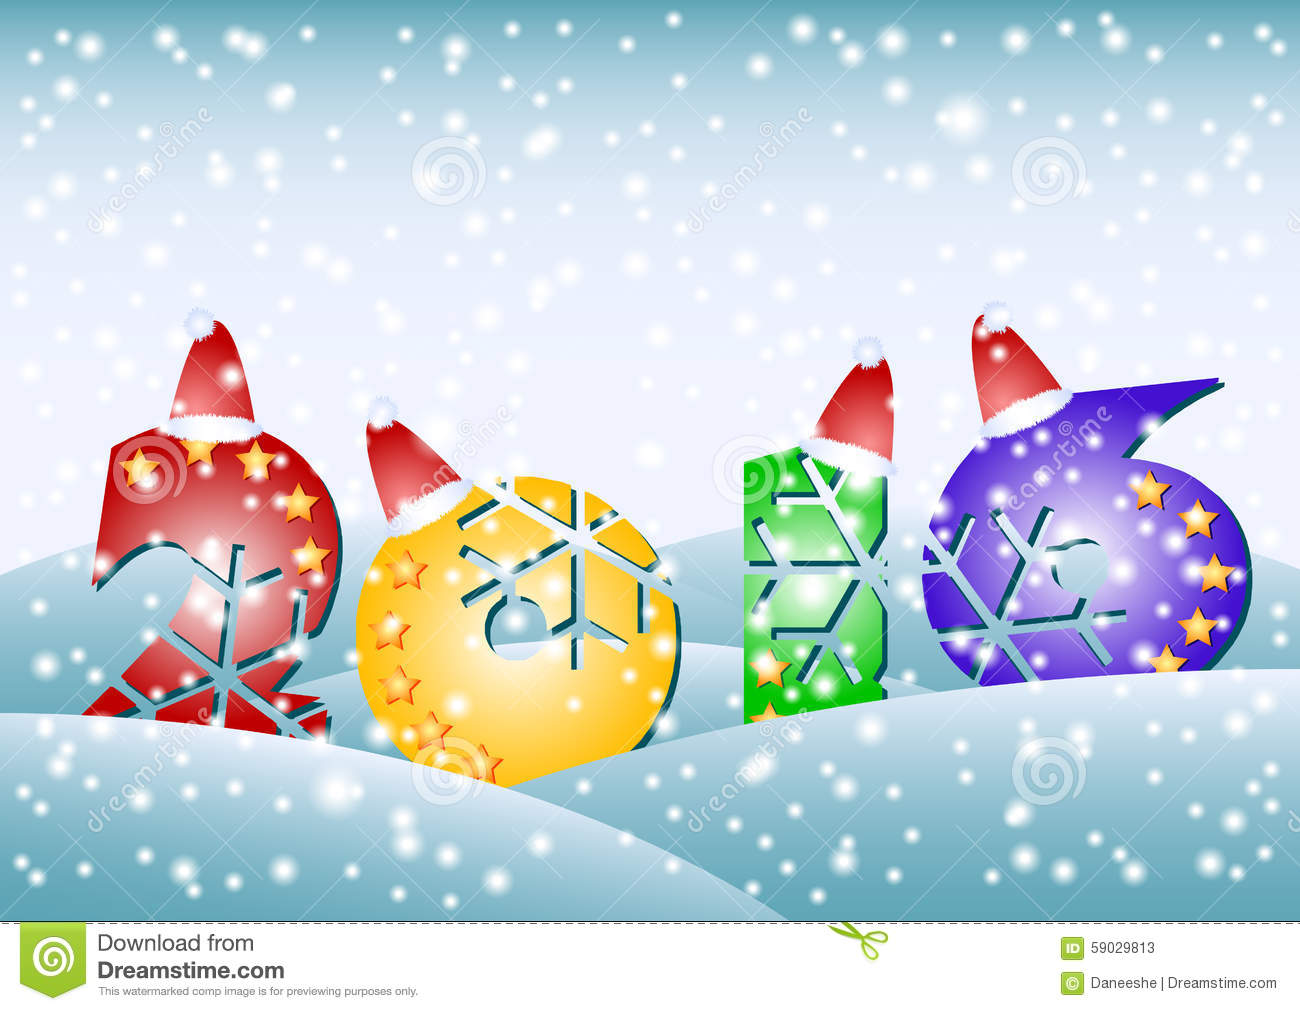 Card With Stylized 2016 For Greeting With New Year And Christmas